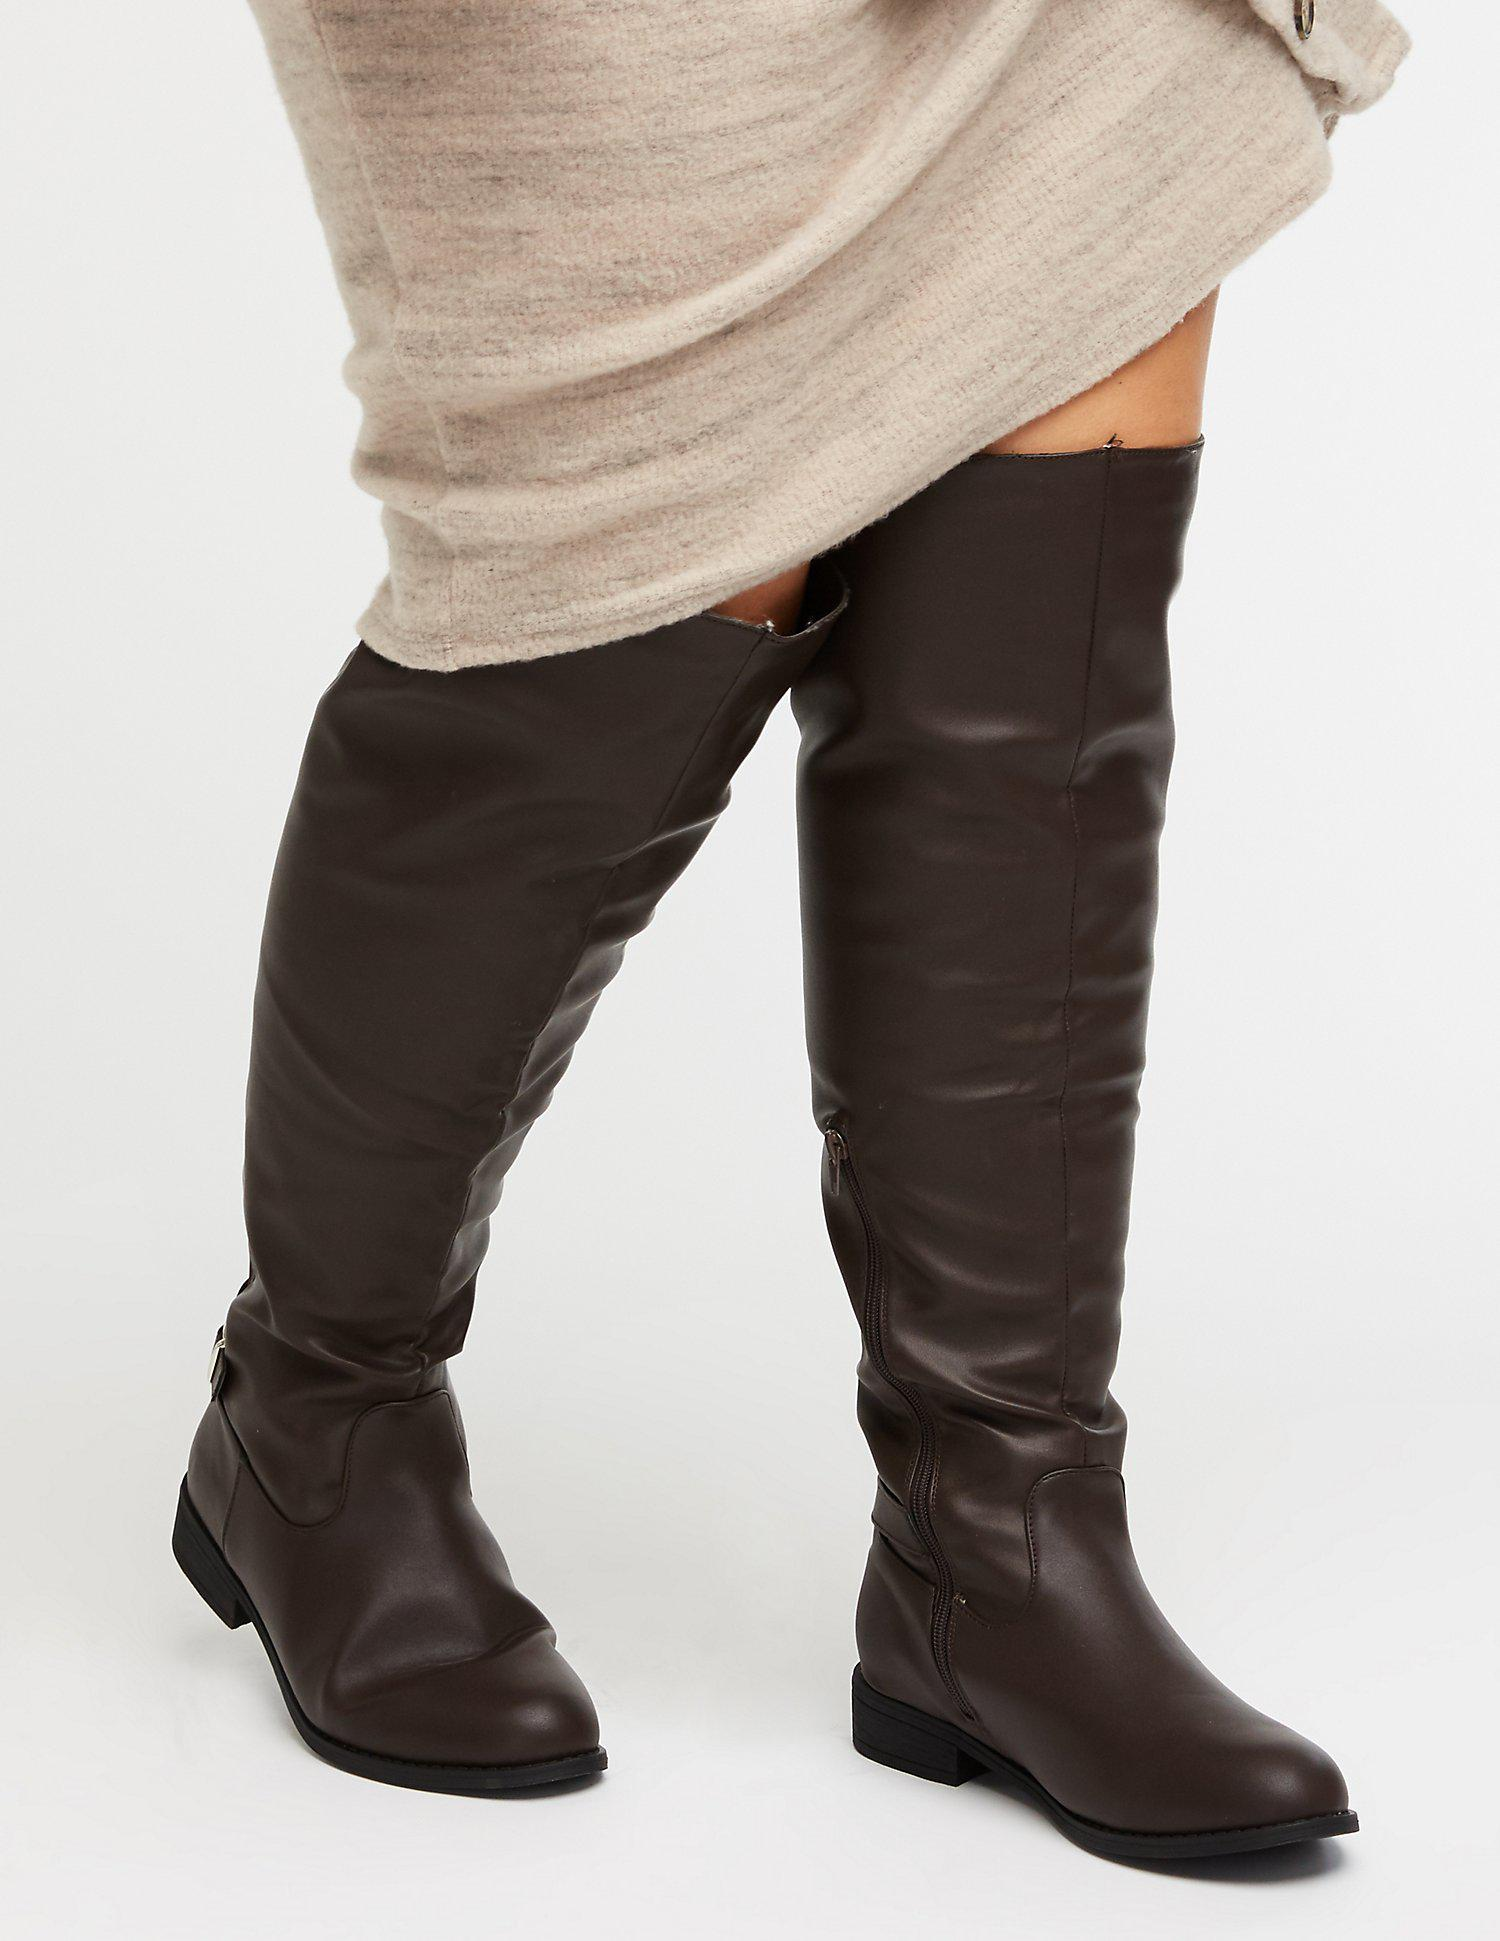 af492d6bbf1 Lyst - Charlotte Russe Wide Over The Knee Boots in Brown